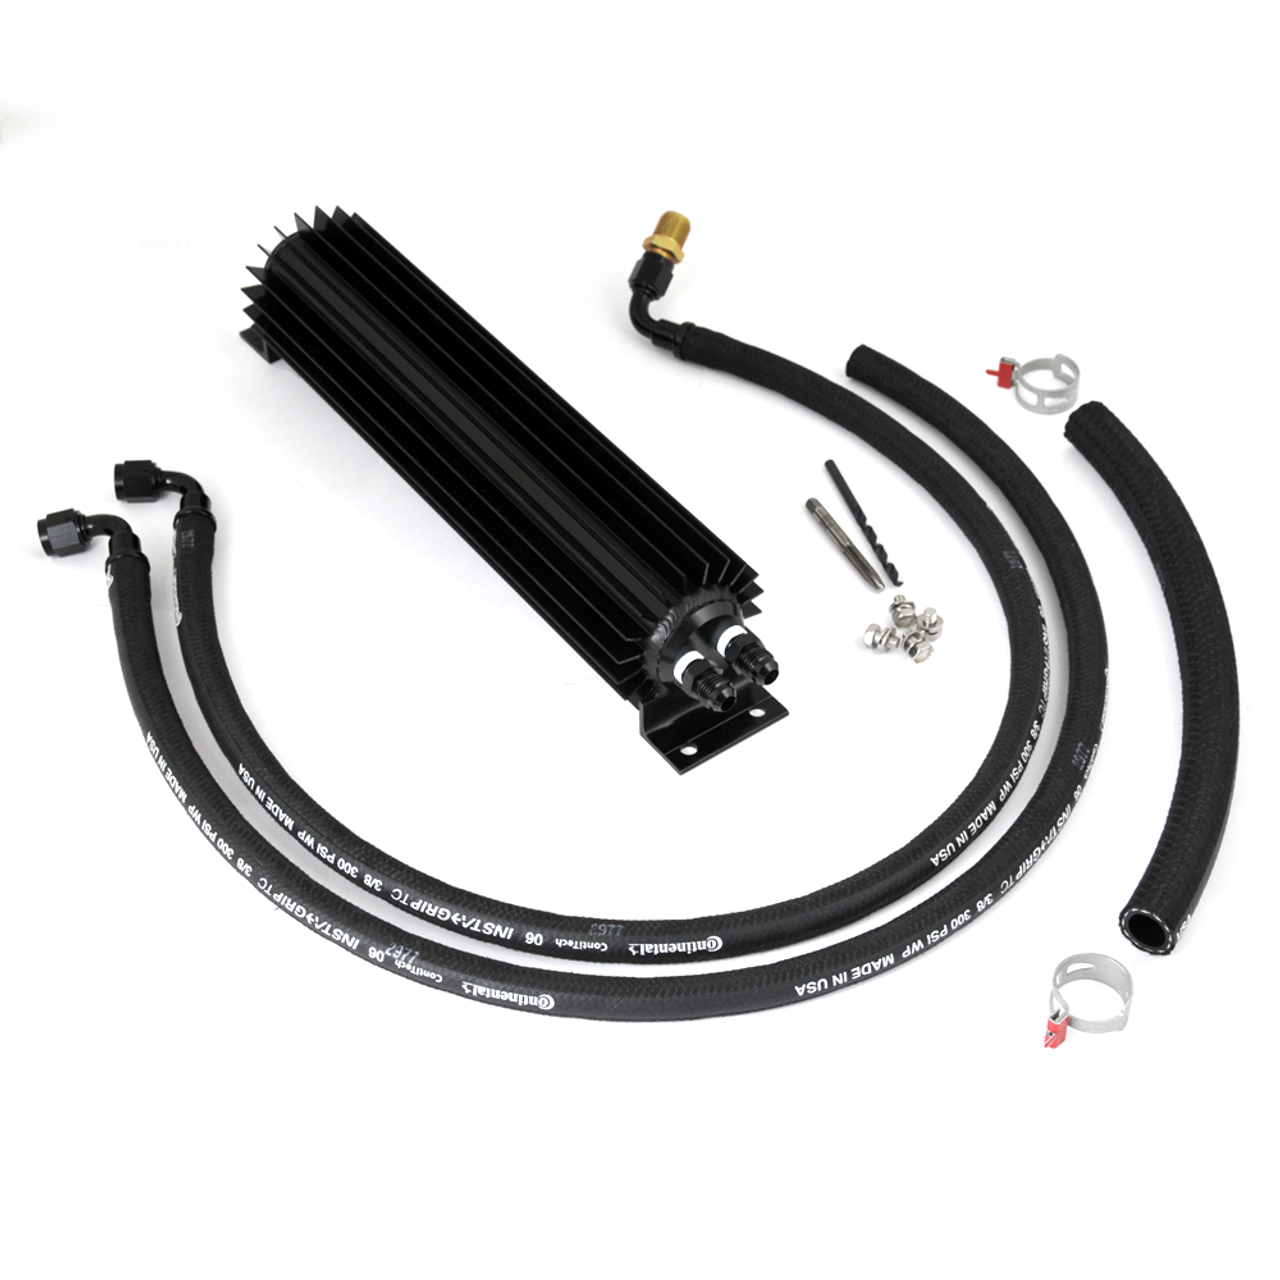 80 Series 1FZ Power Steering Cooler and Hose Upgrade Kit (PSC-1KIT)